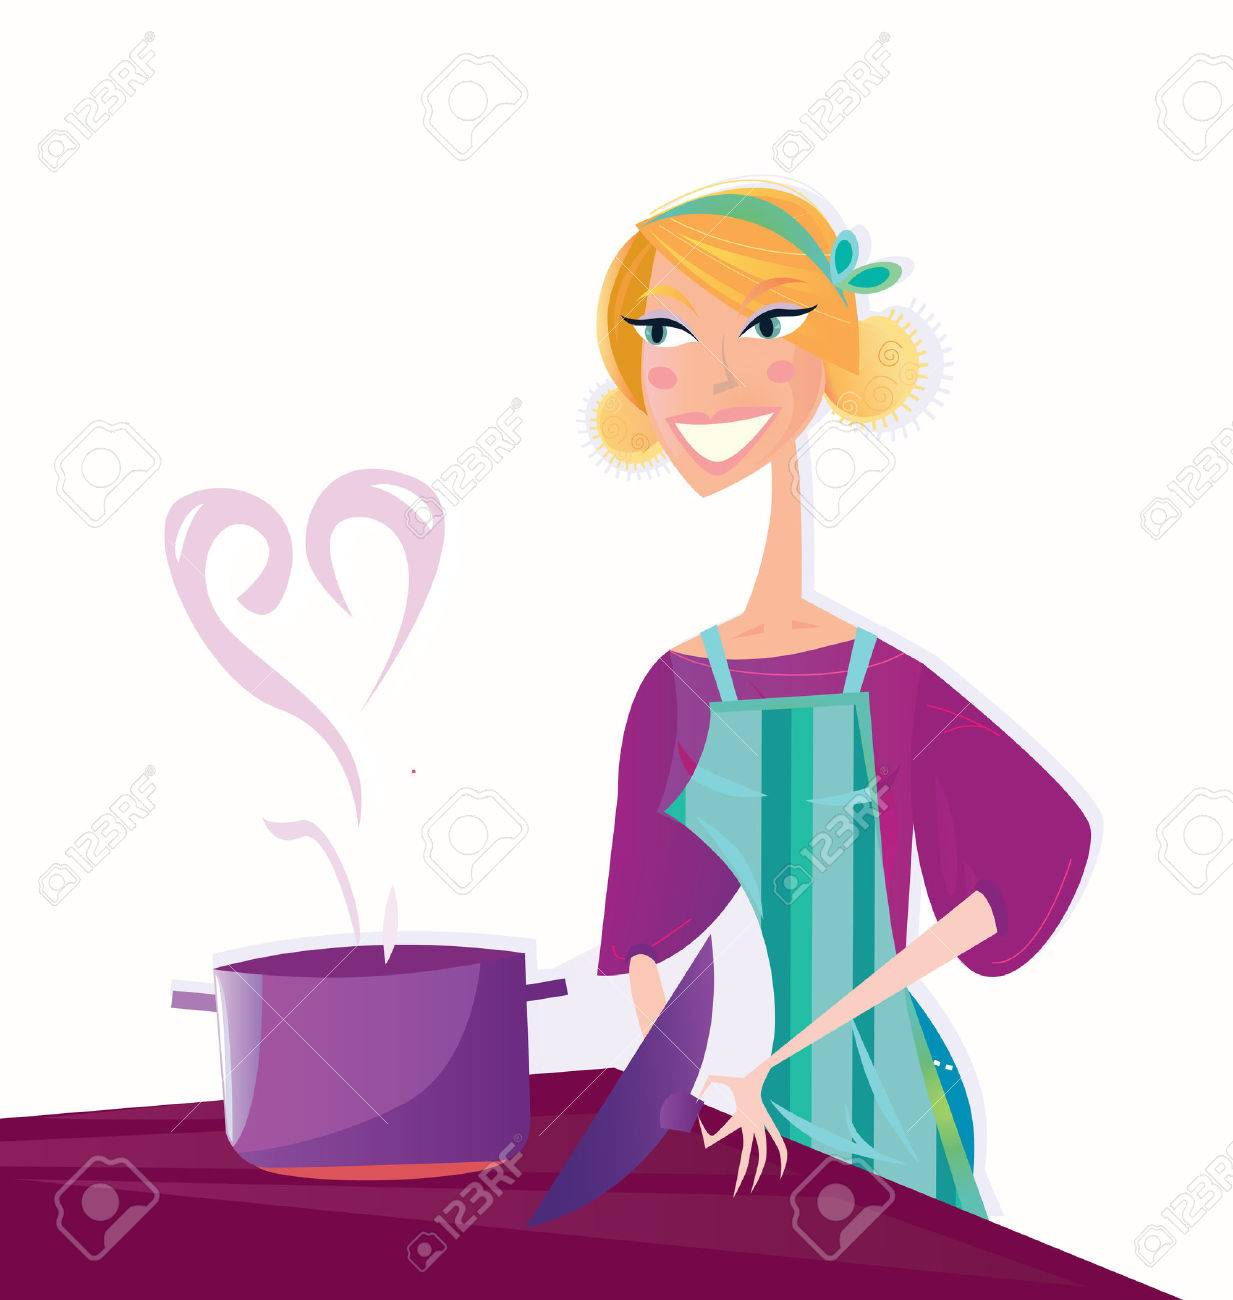 Cooking with love. Woman is cooking sweet valentines food. Stock Vector - 6367546